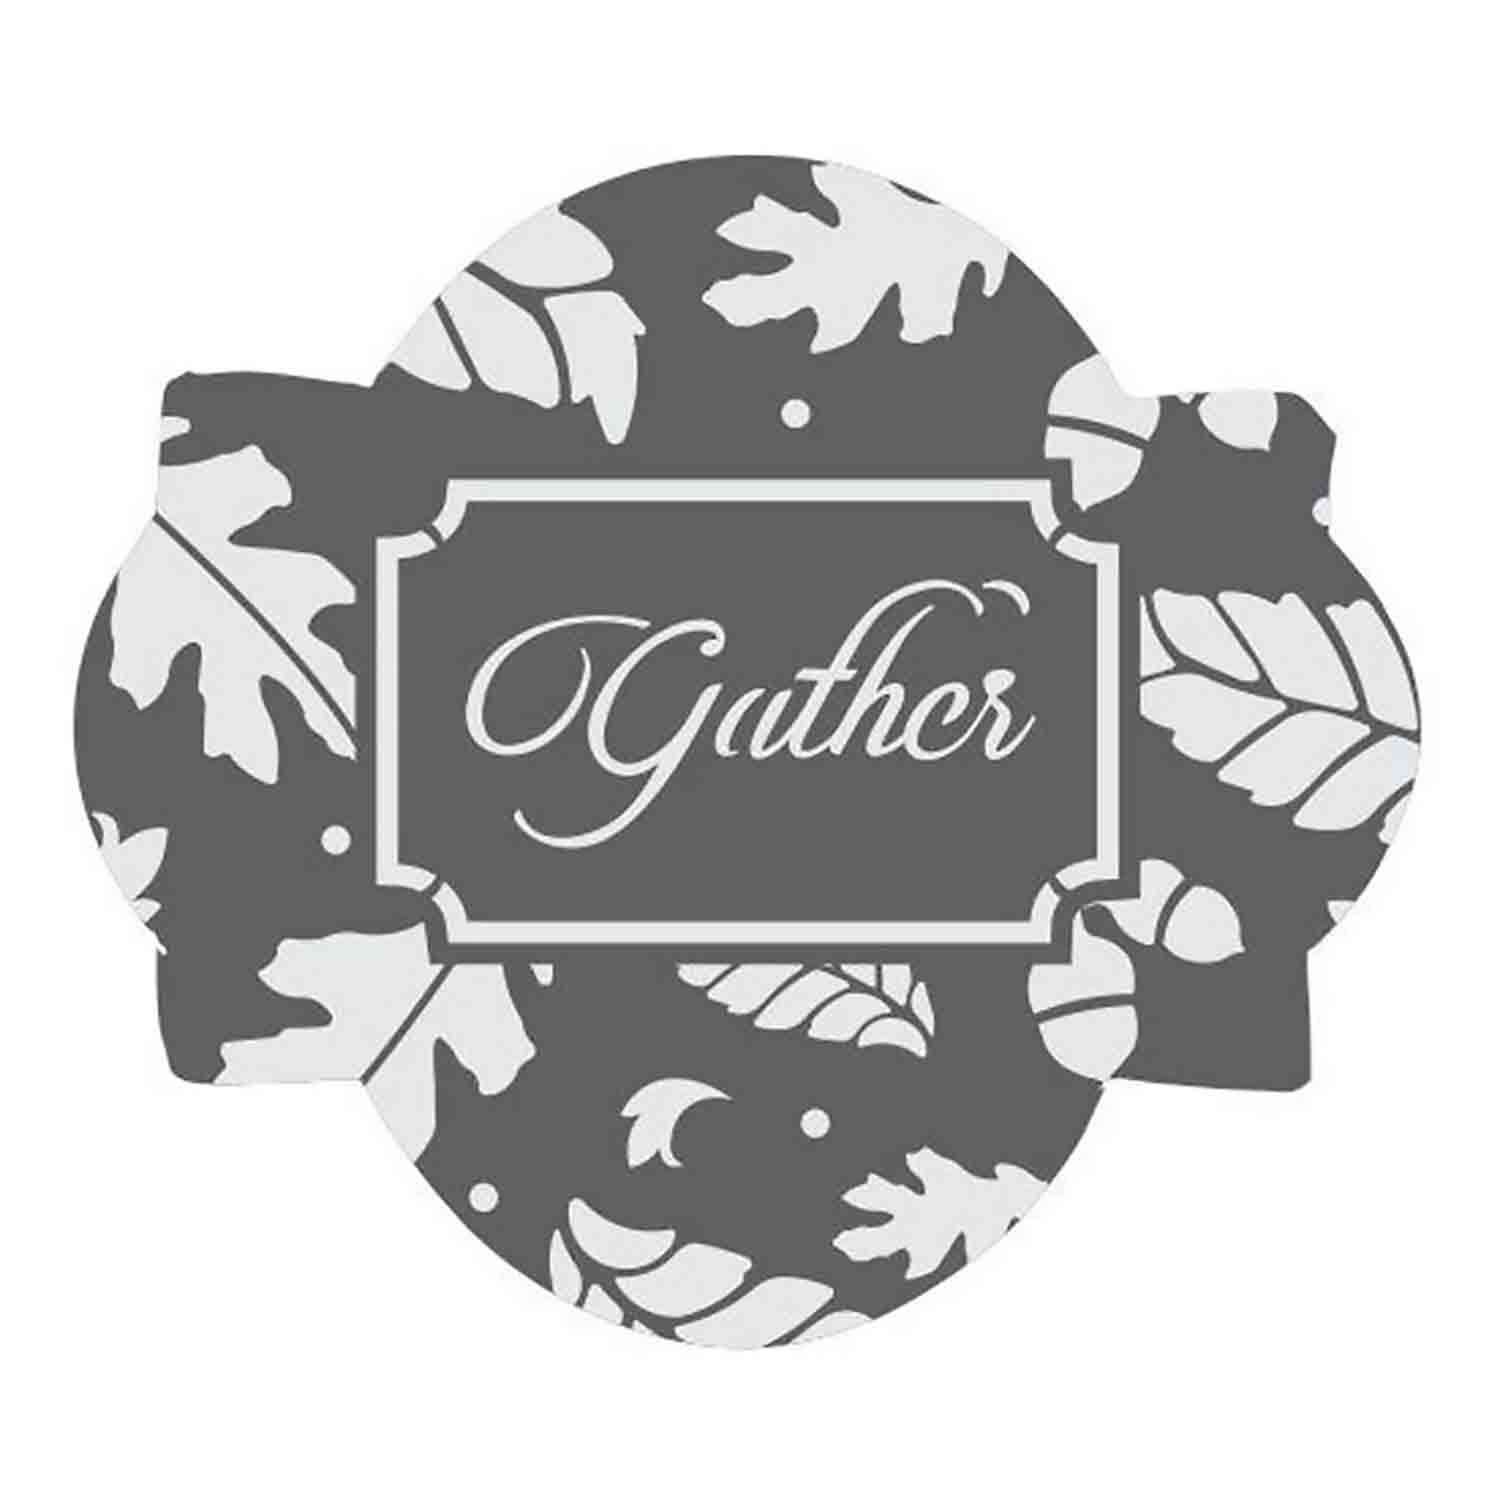 Gather Stencil Set by Julia M Usher